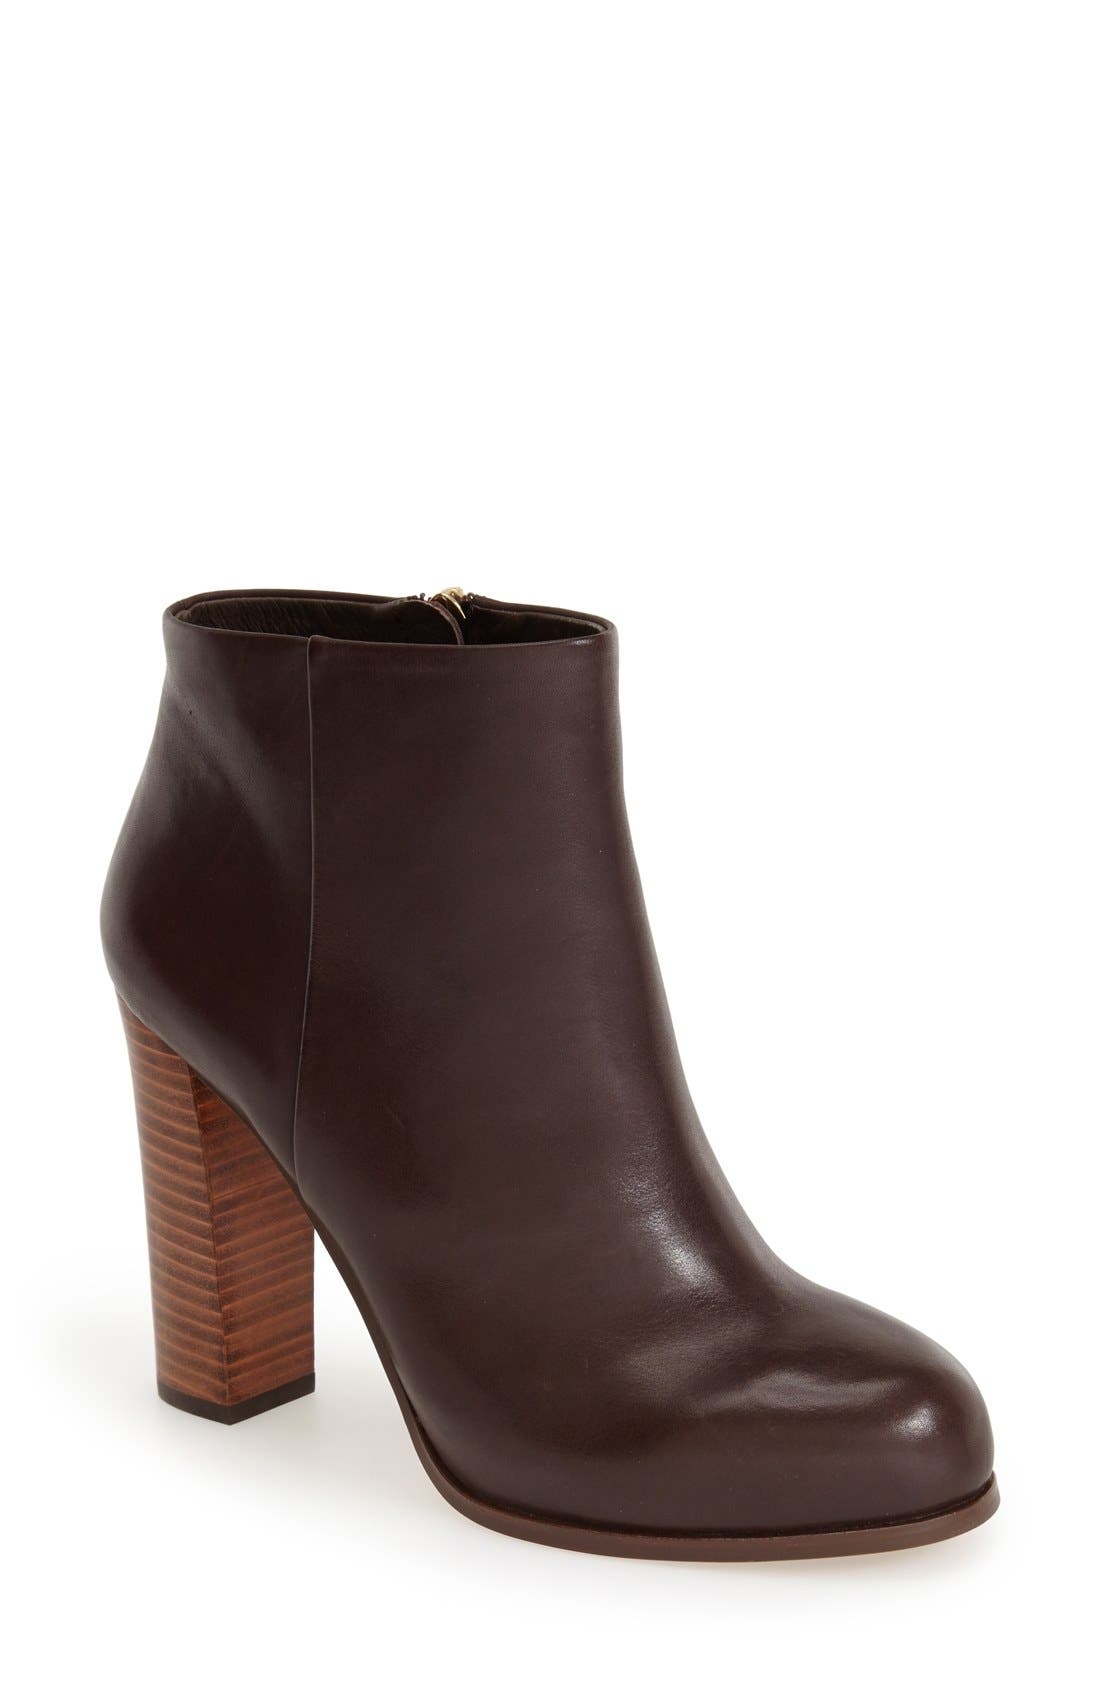 Alternate Image 1 Selected - Vince Camuto 'Grenadine' Bootie (Women)